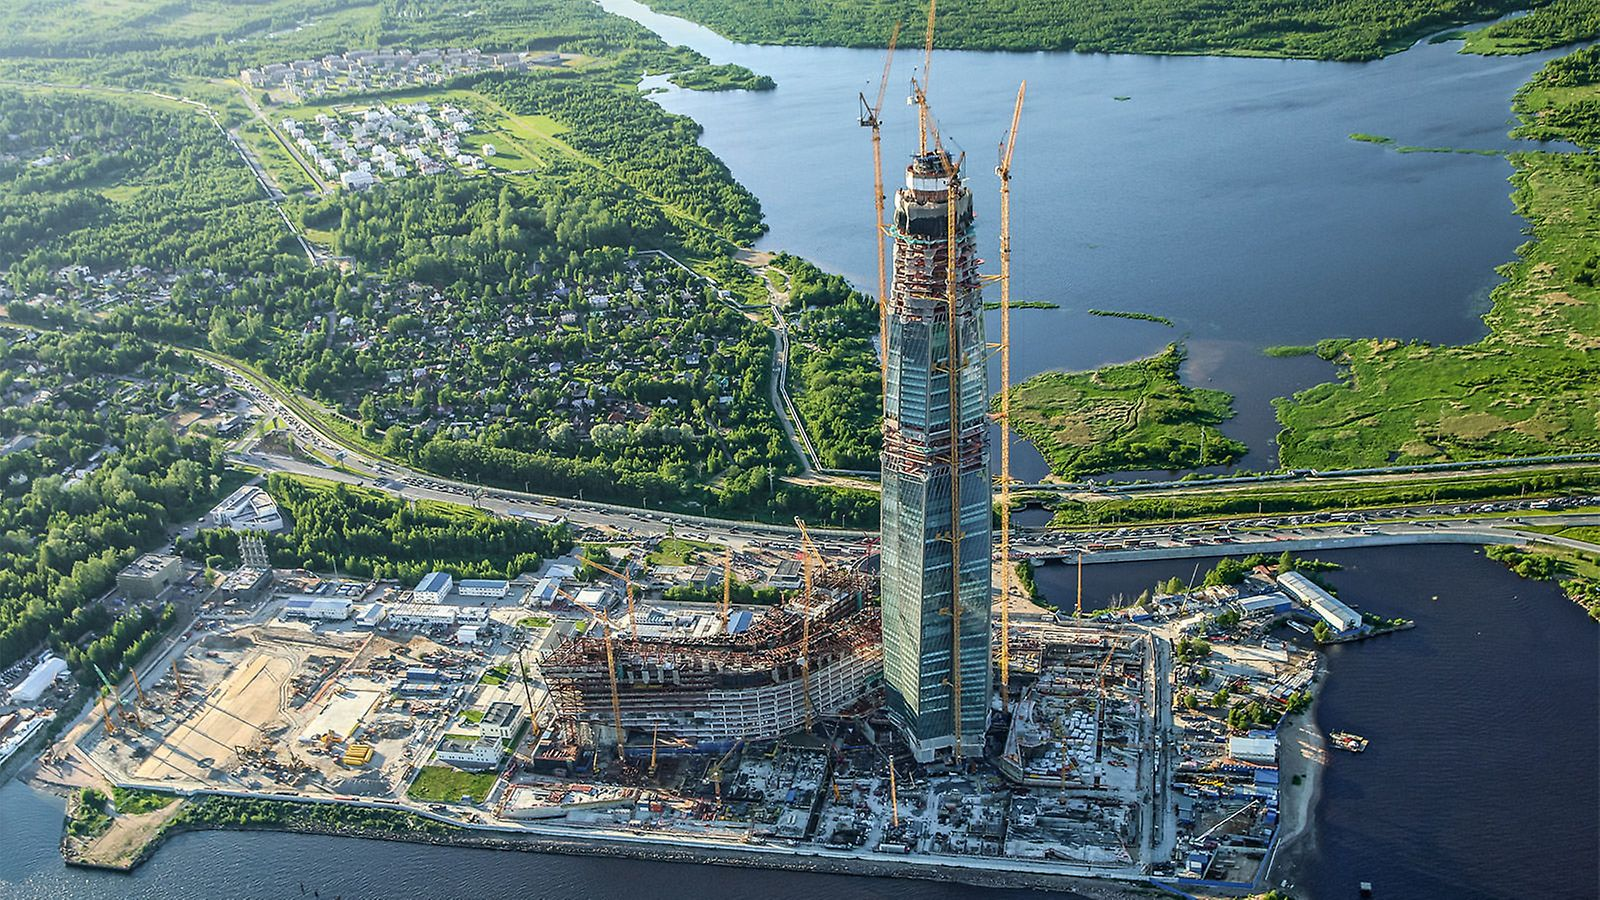 The future highest high-rise building in Europe is currently being realized in Saint Petersburg: the headquarters of the energy company Gazprom will reach a total height of 462 m. Spectacular multi-functional buildings, an amphitheater and spacious parks complement the complex.